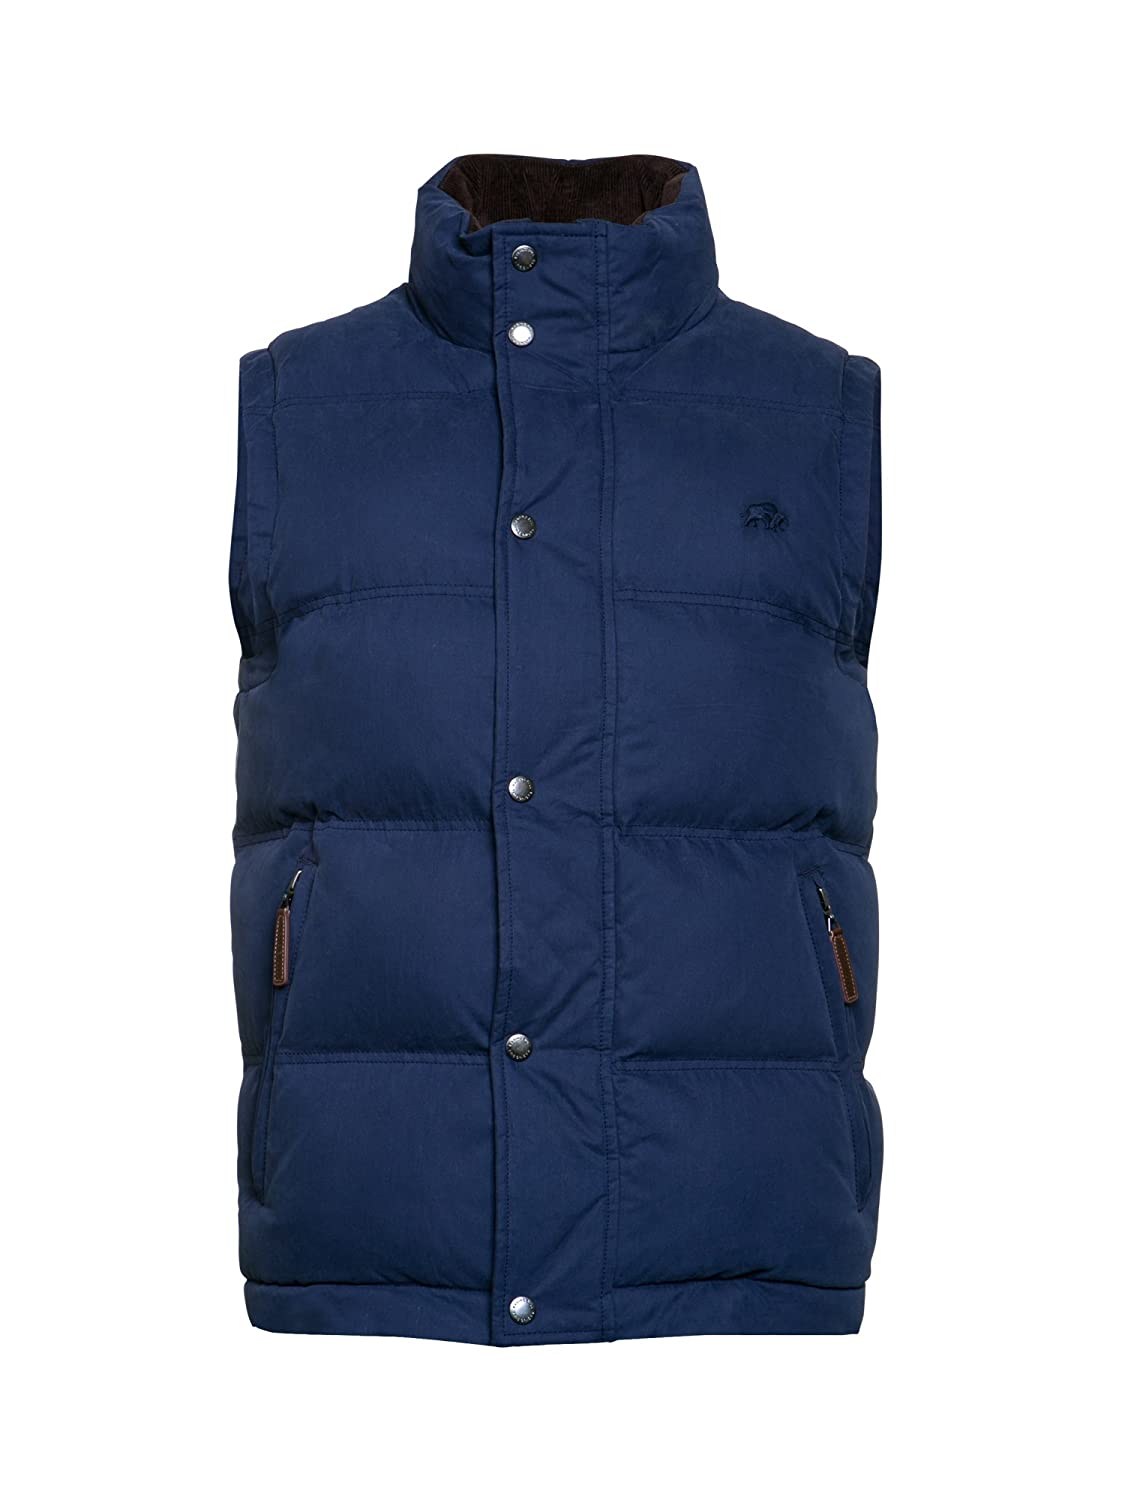 Raging Bull Men's Signature Gilet